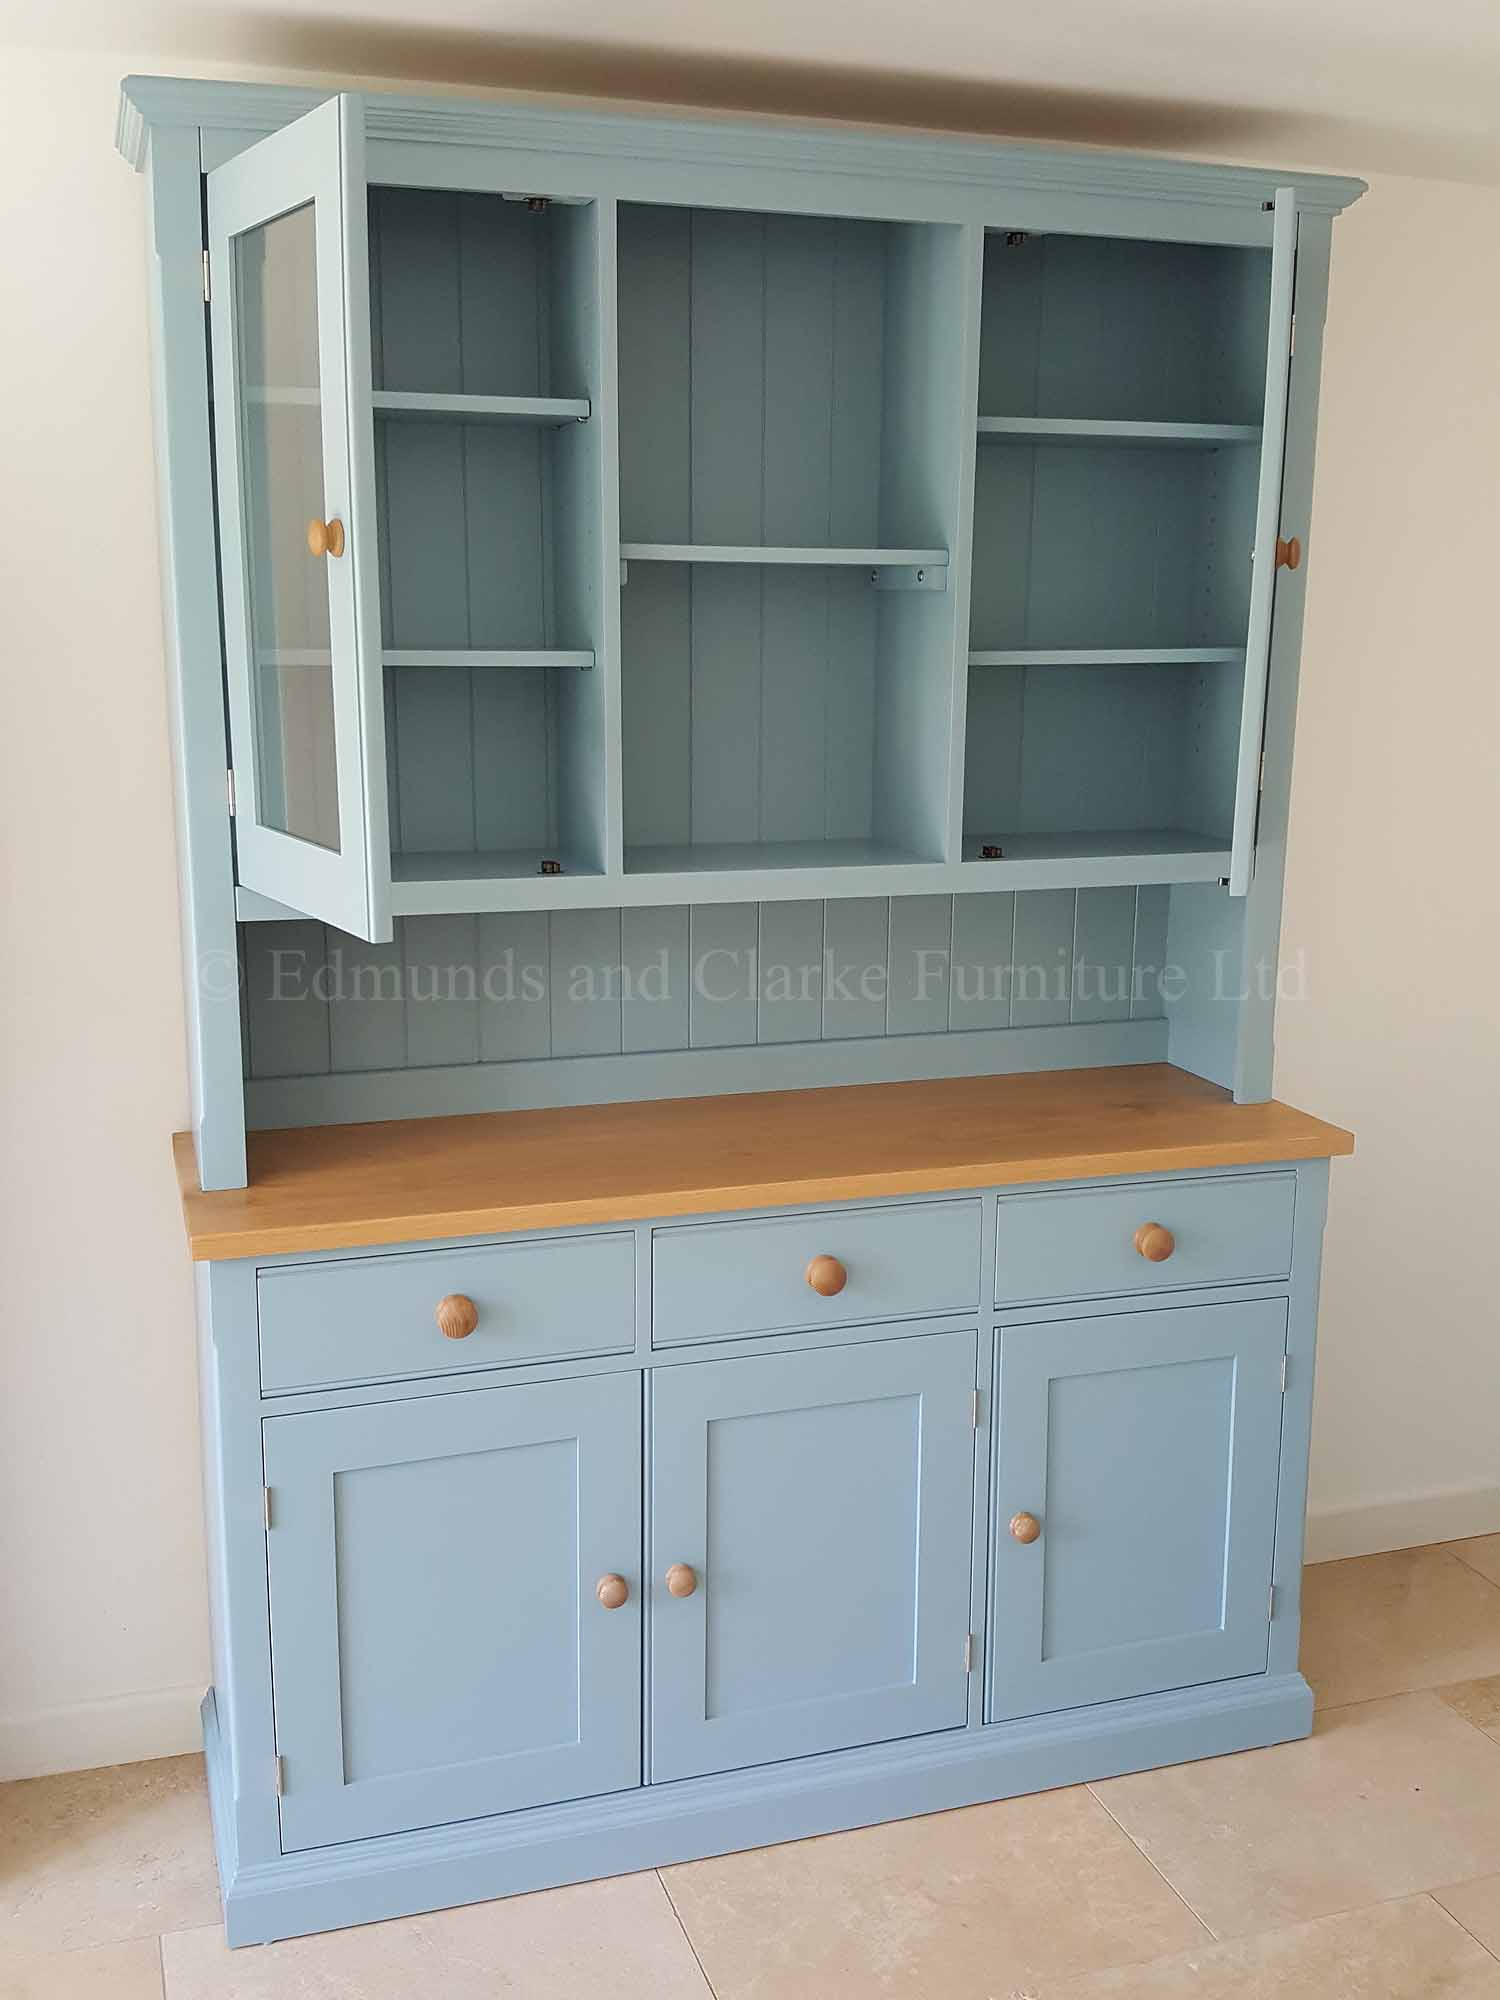 Painted kitchen dresser with oak top, choice of colours available